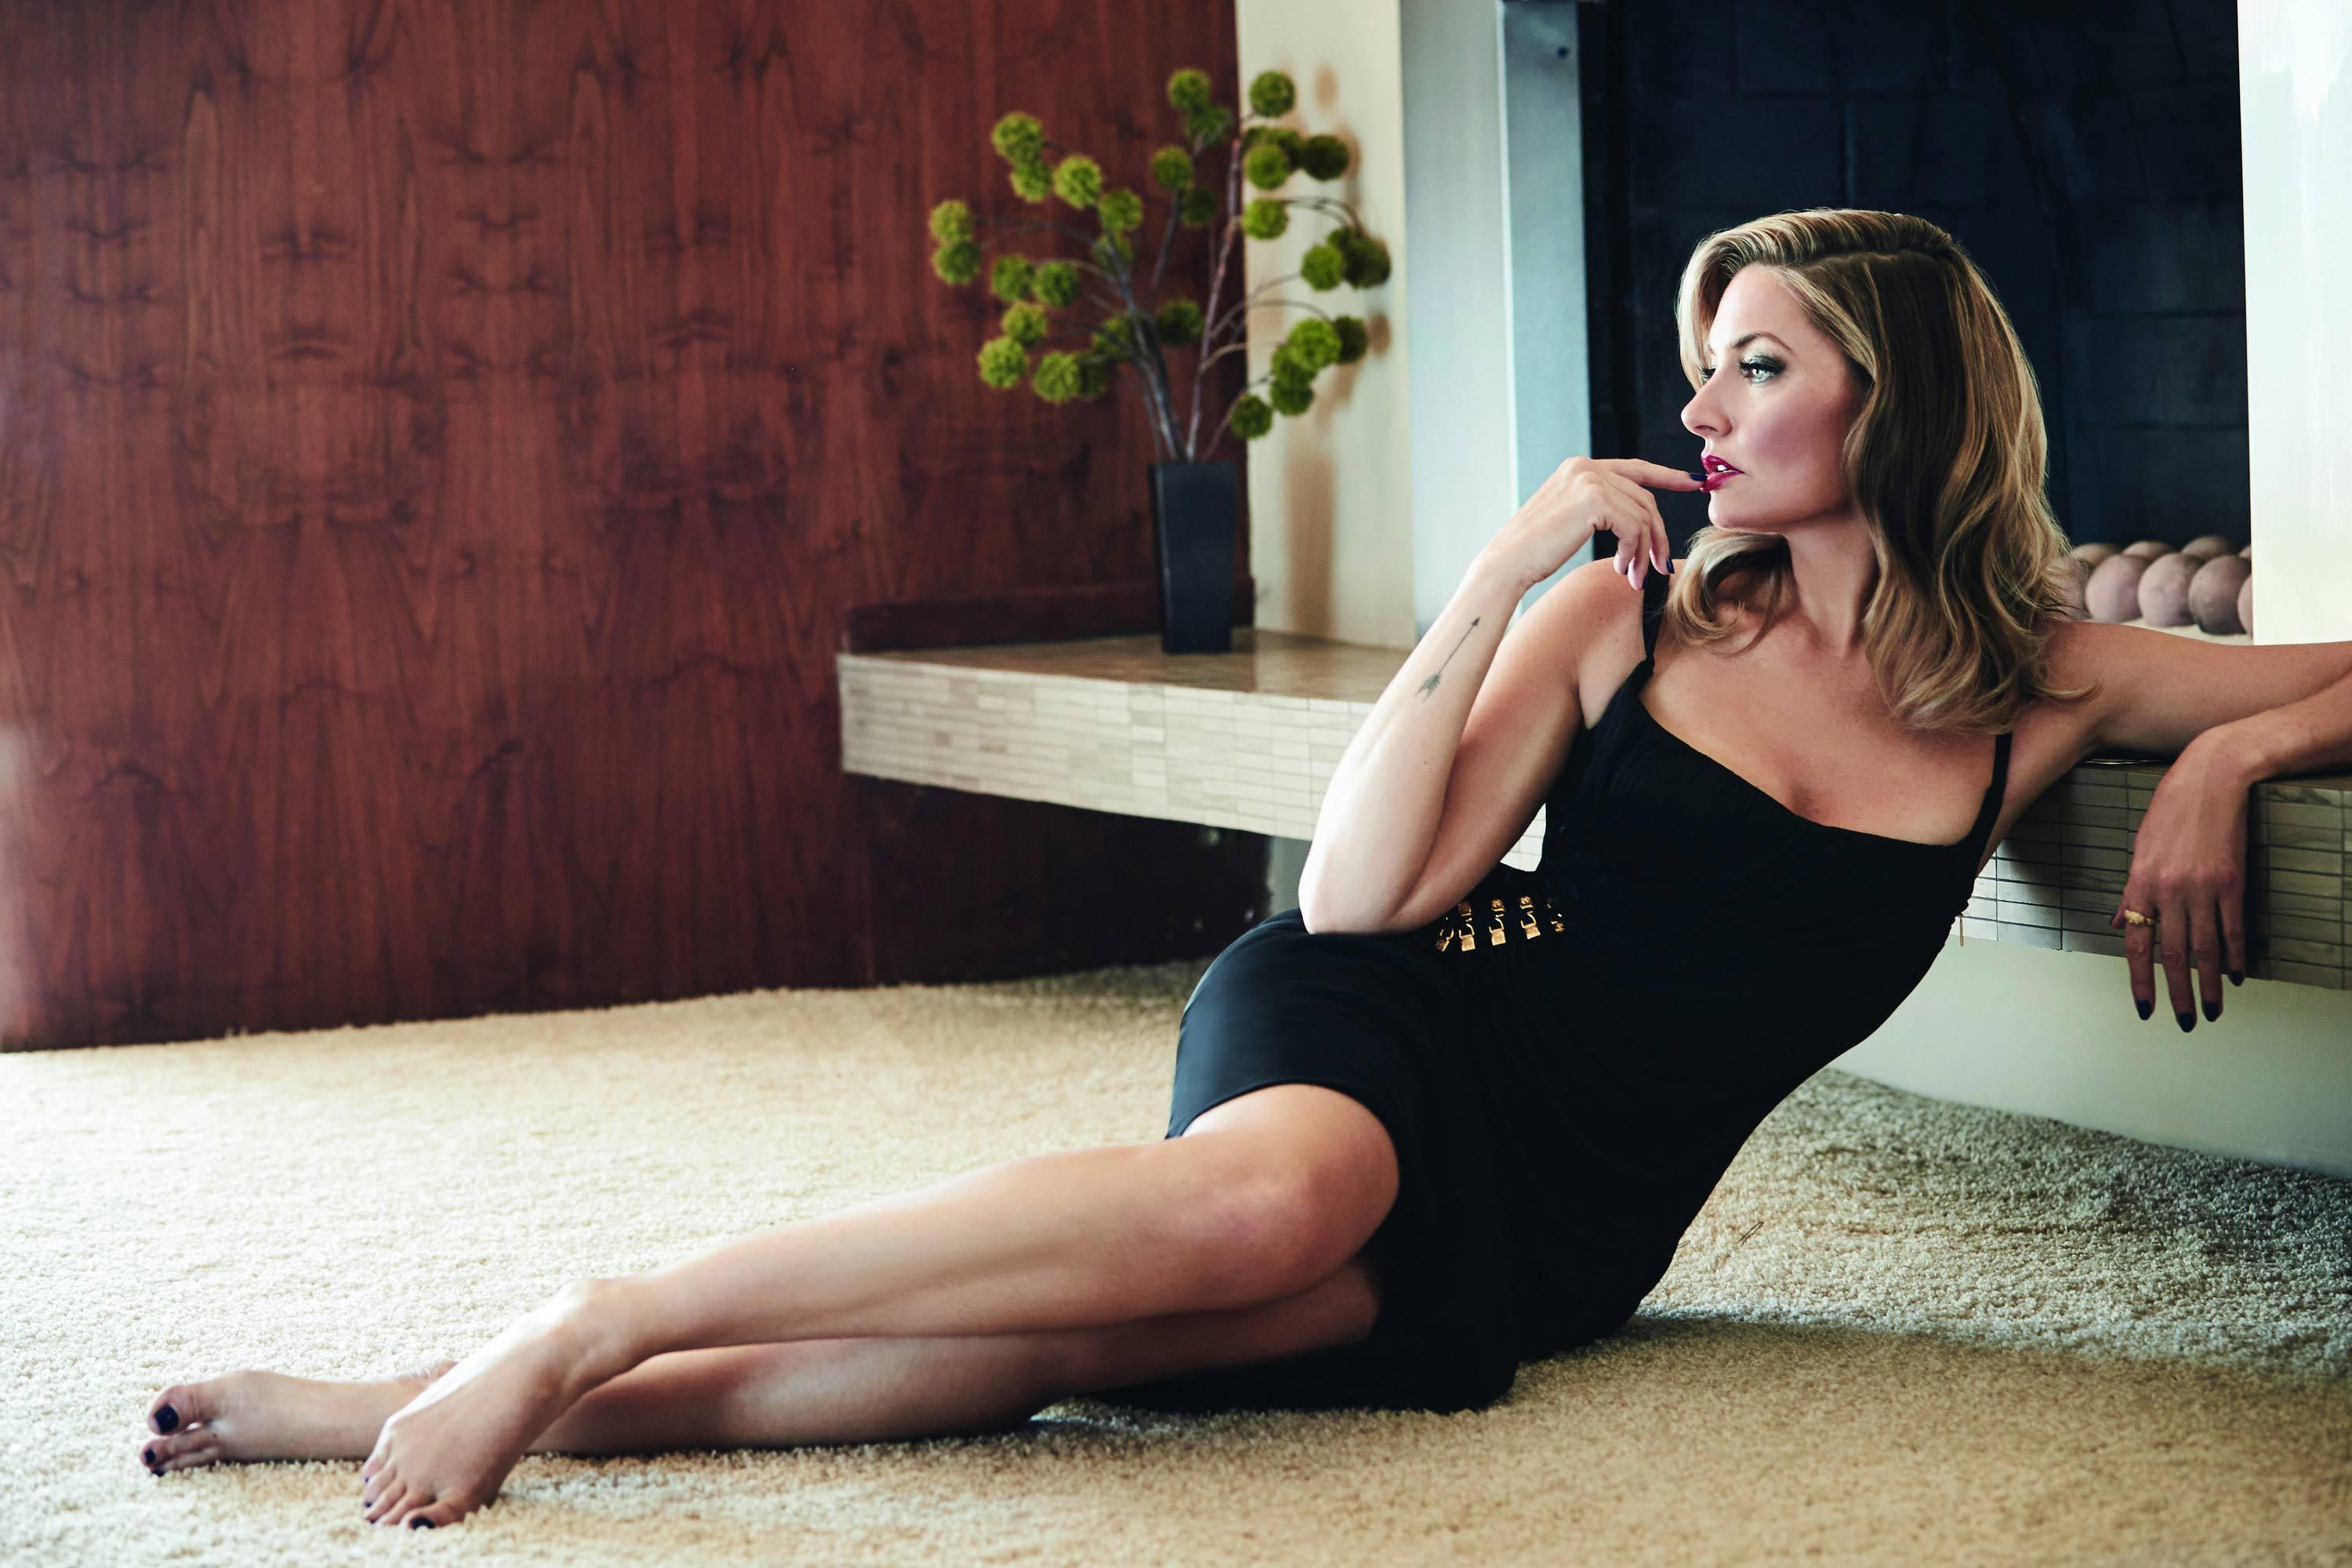 M\u00e4dchen Amick in a black mini dress and matching black toenail polish on her bare feet